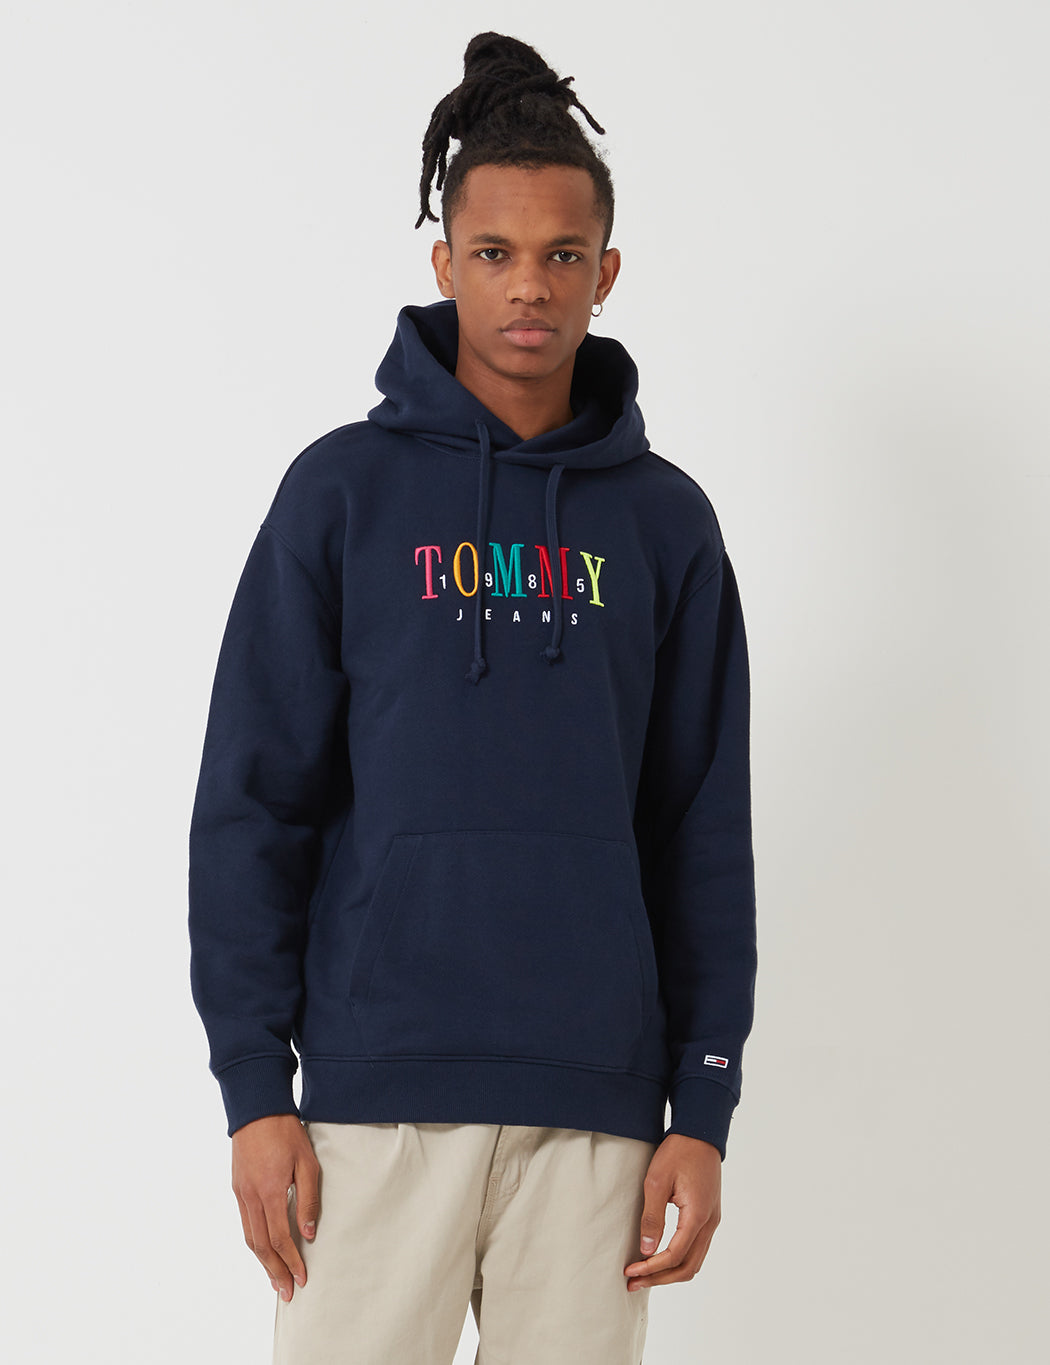 7aacdc162 Tommy Hilfiger Graphic Hooded Sweatshirt - Black Iris | URBAN EXCESS.